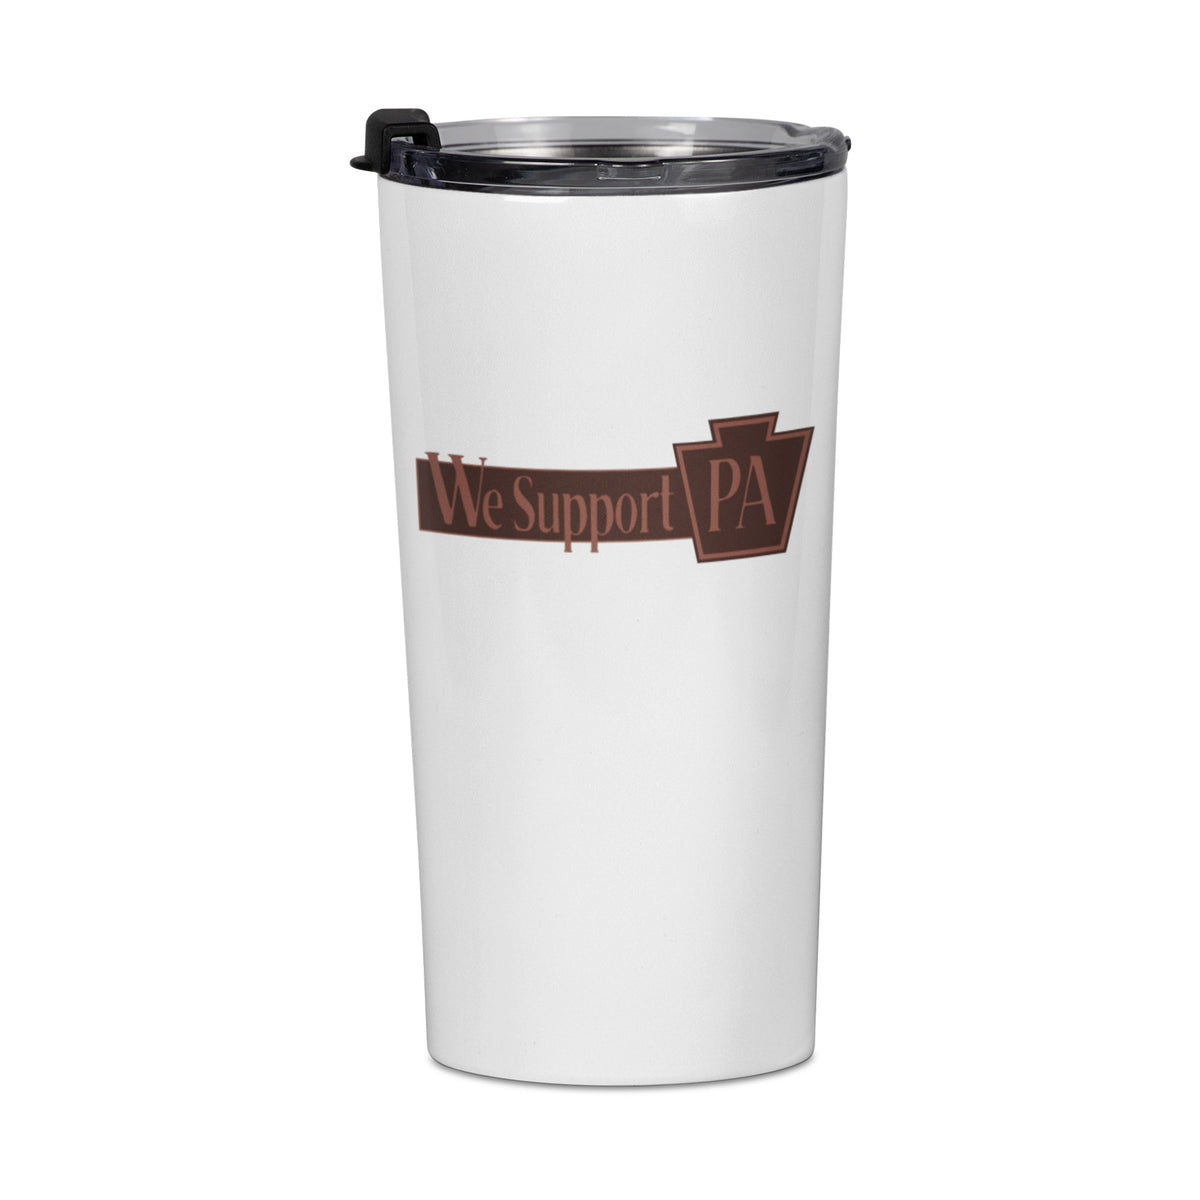 Diggity Dawg Daycare We Support PA Travel Mug